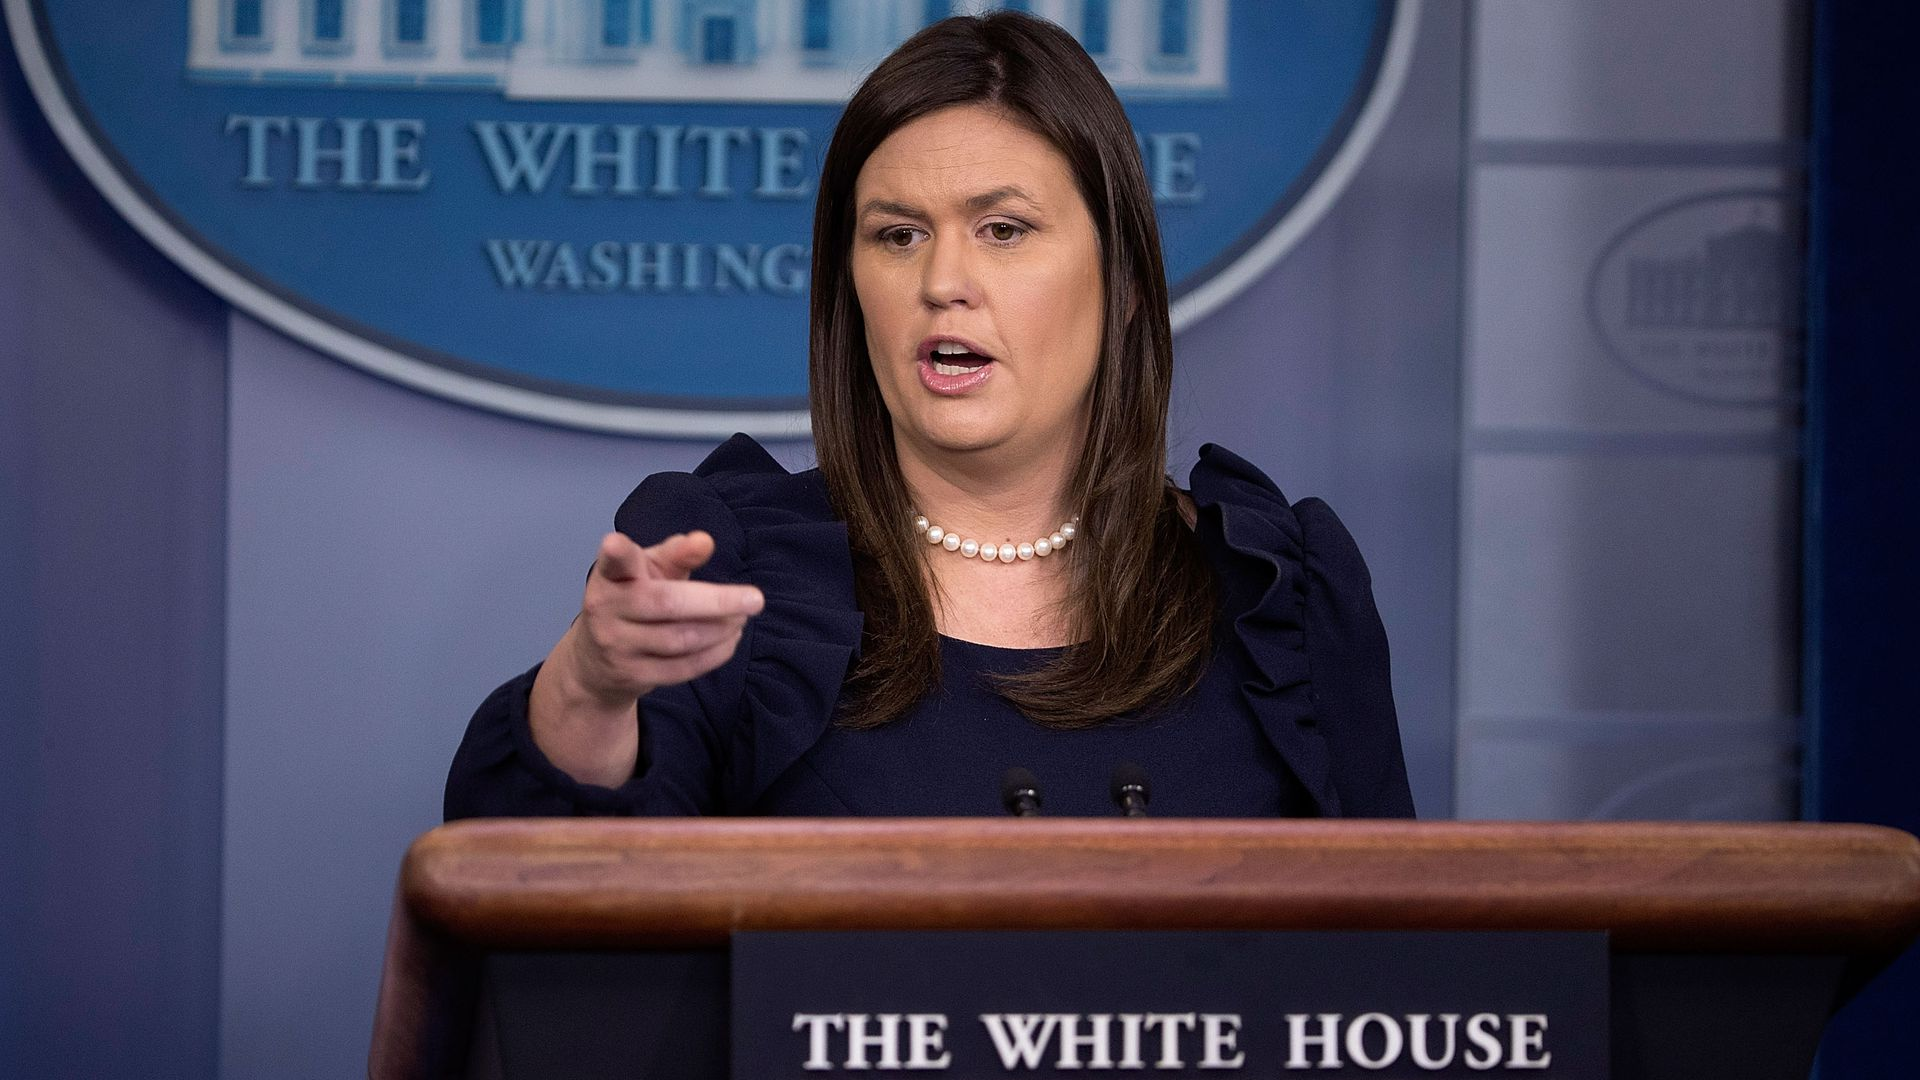 Sarah Sanders points to a reporter while speaking at the podium